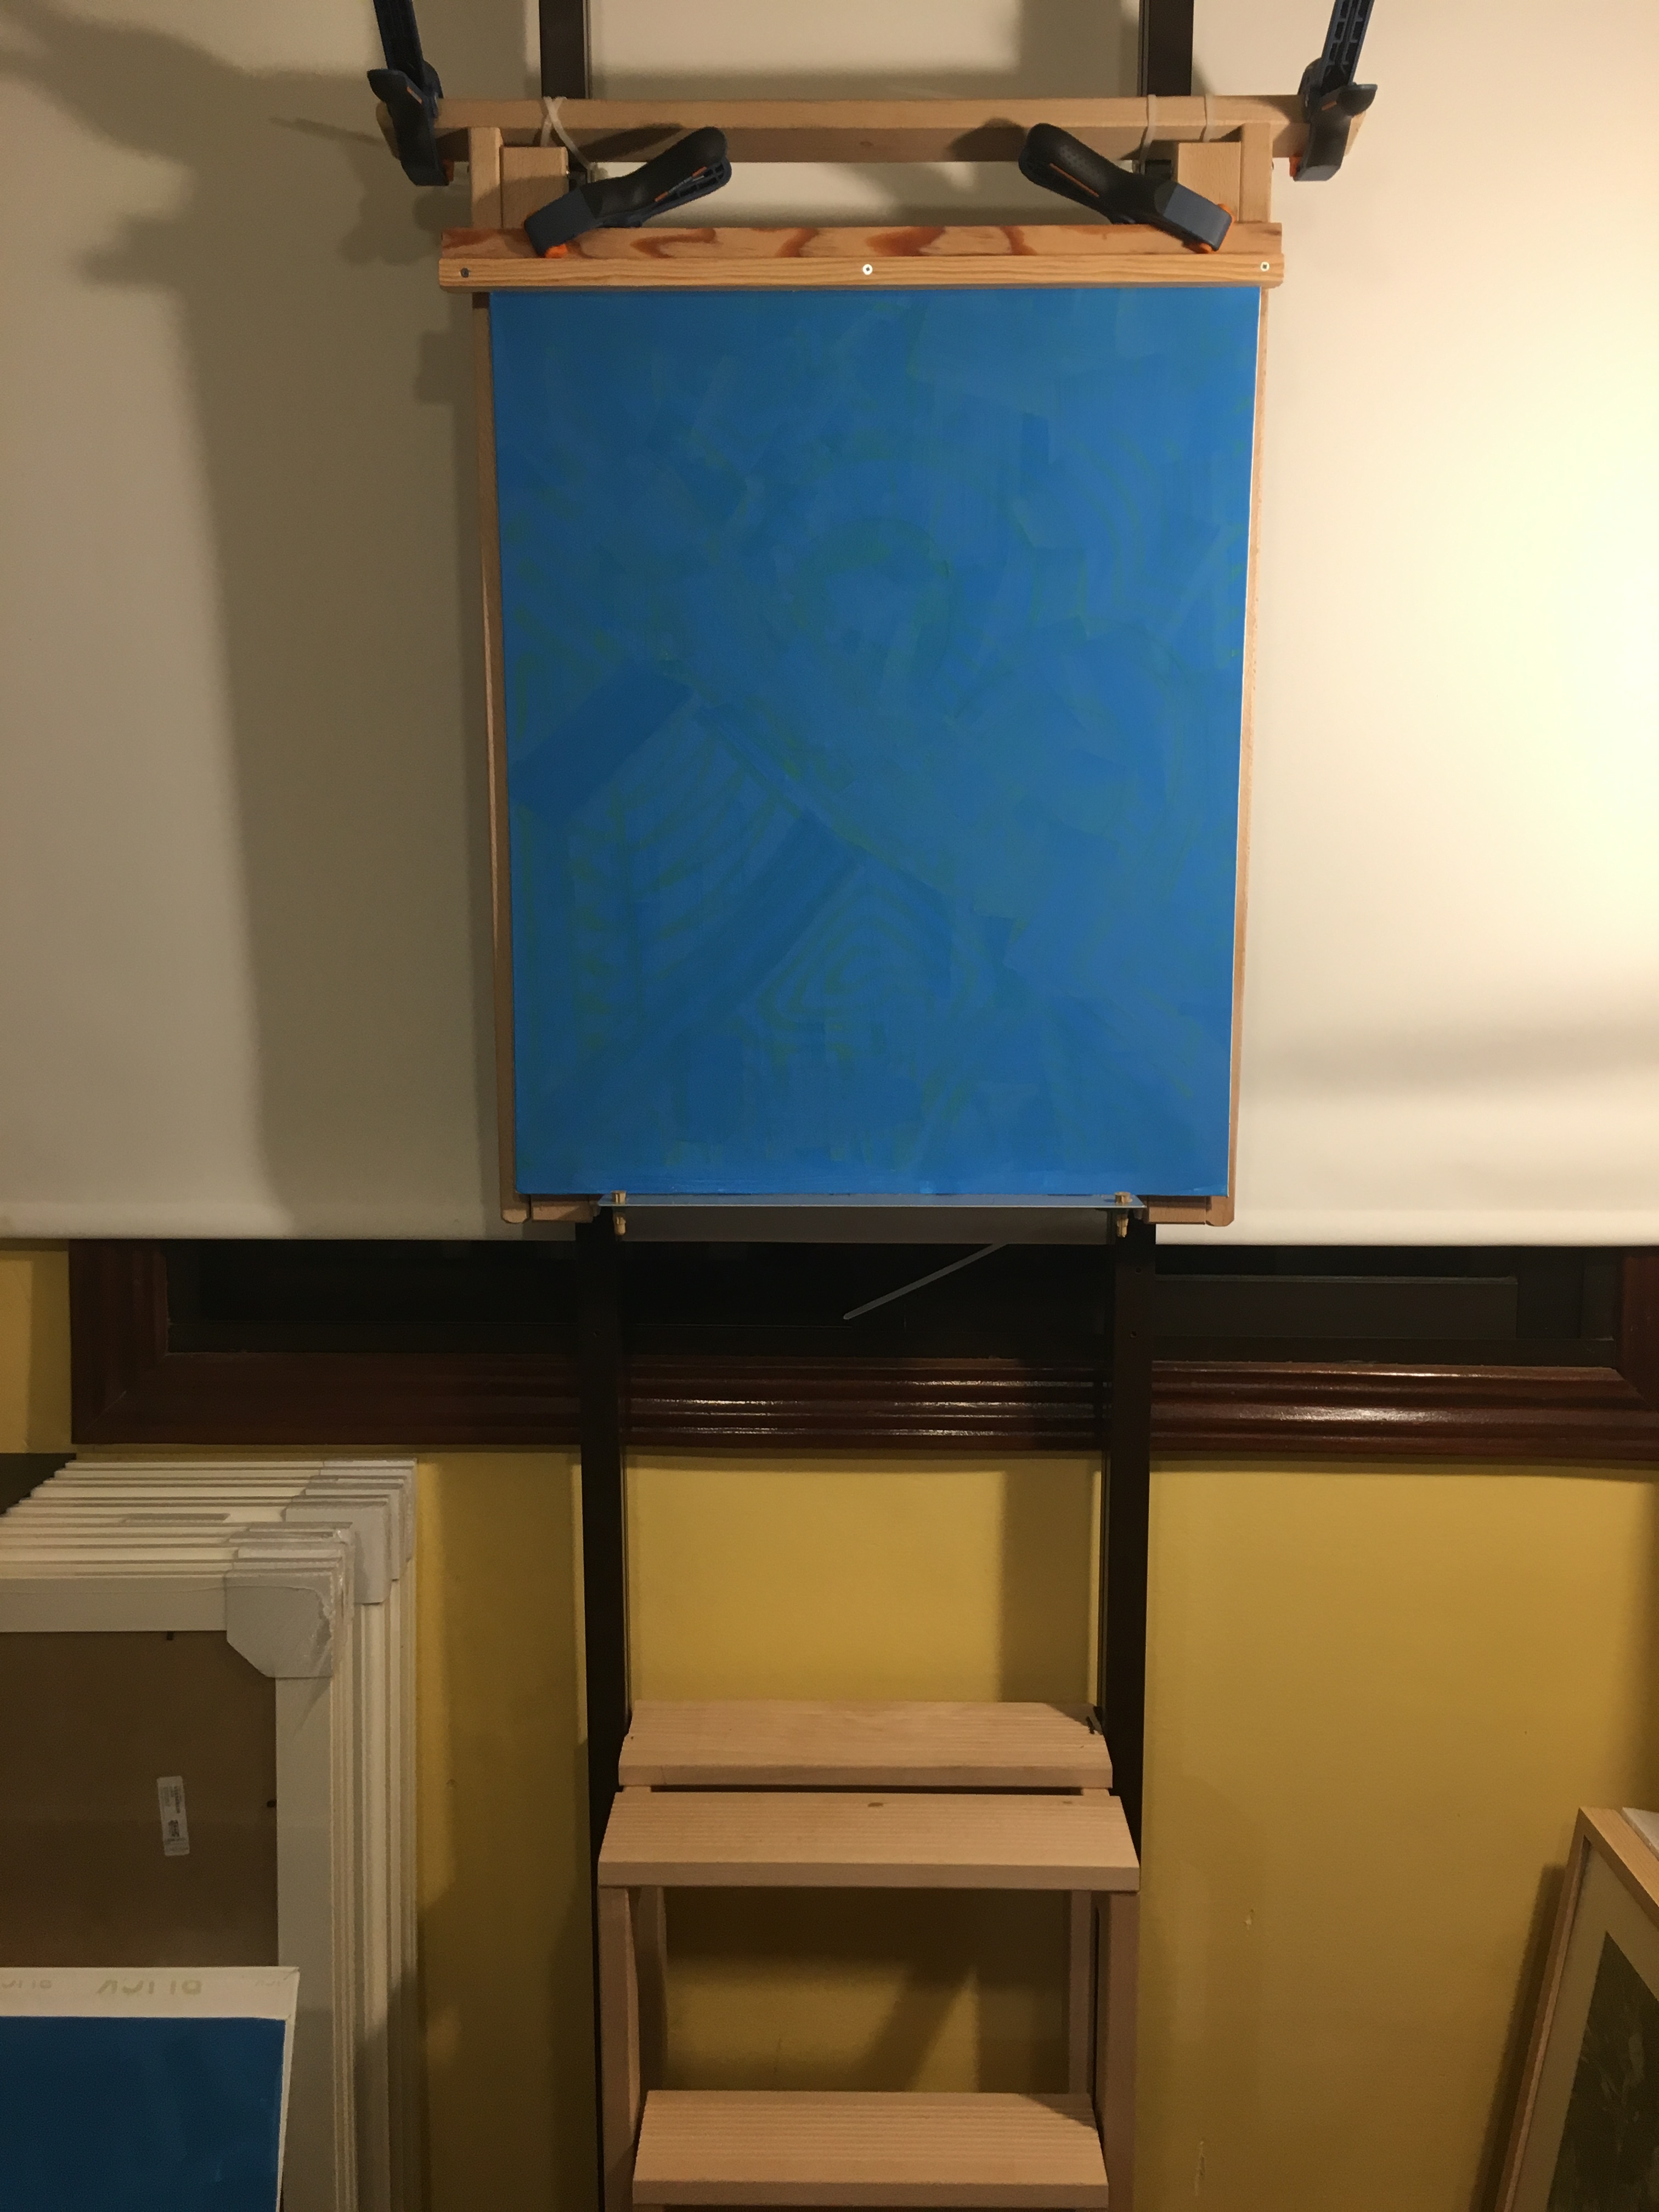 New easel, front view without inclination